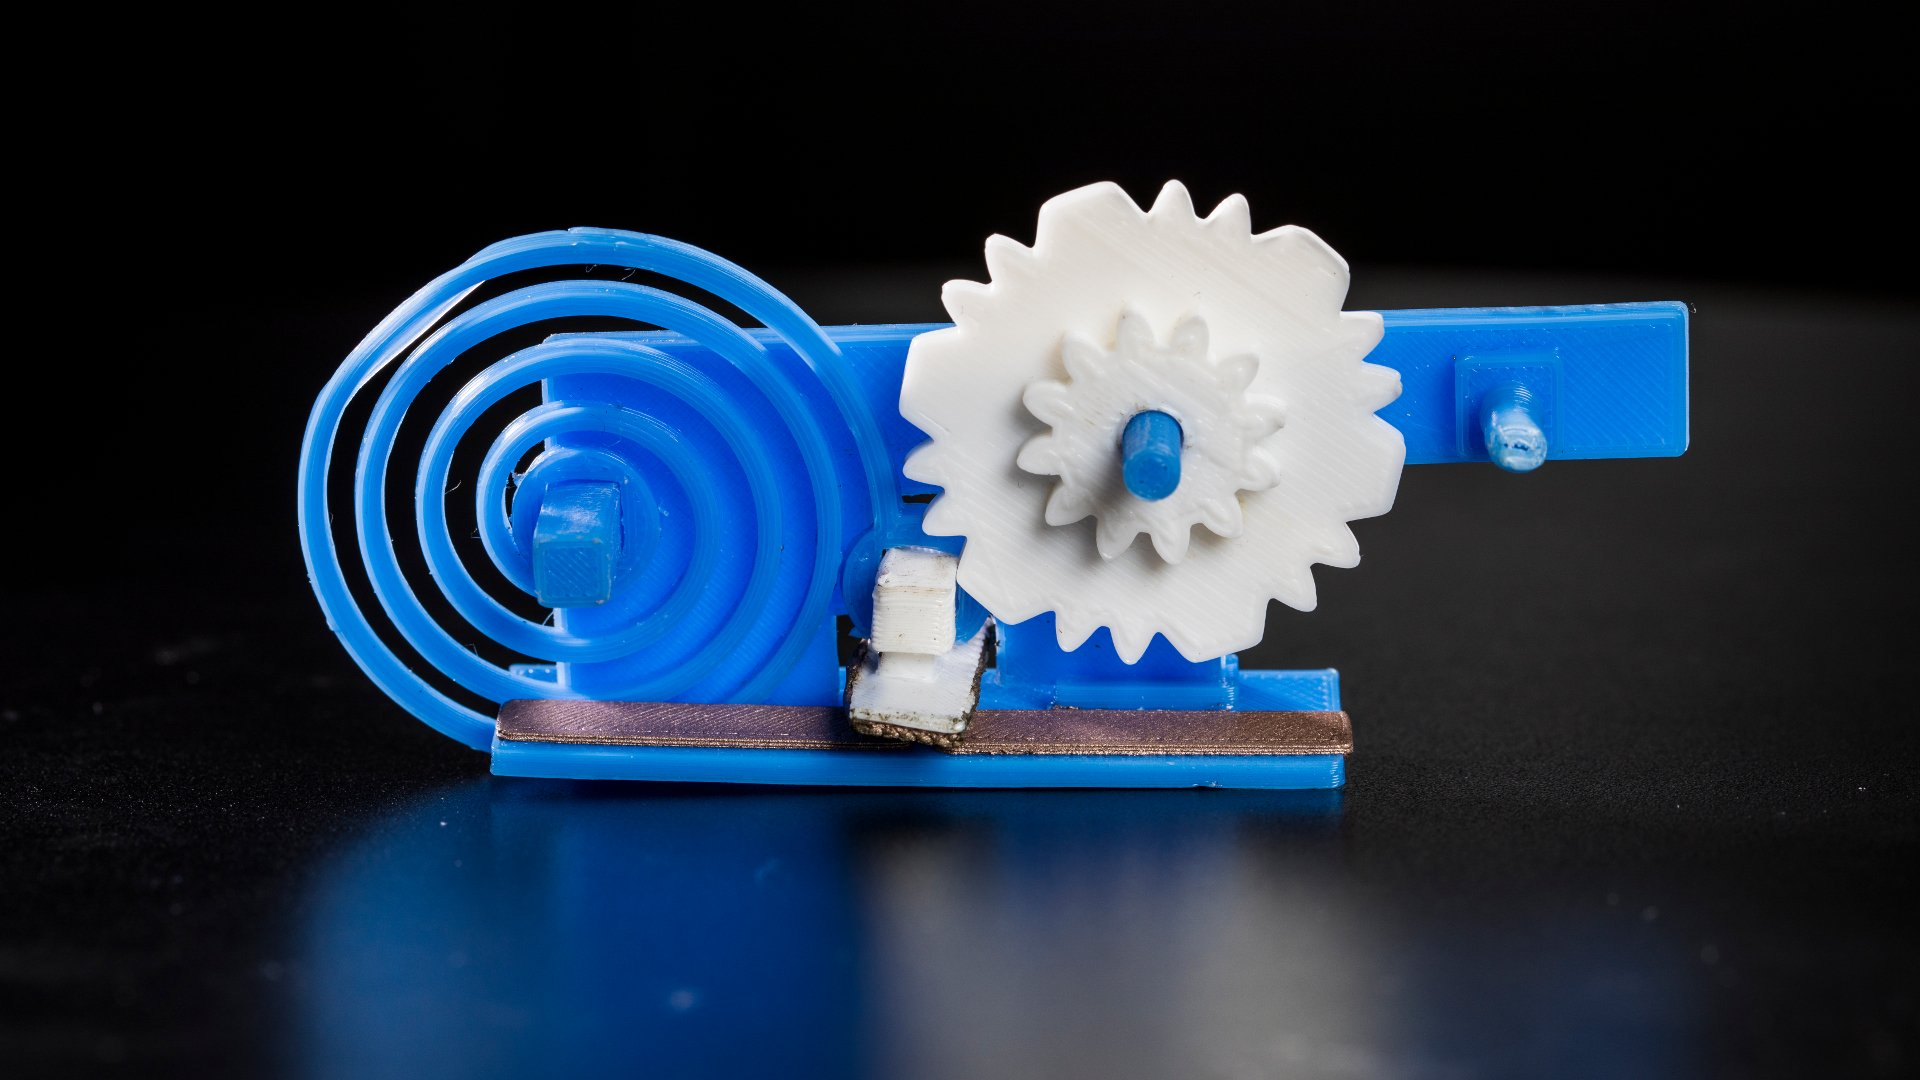 3D Printed Wireless Connected Objects Work Without Batteries | All3DP